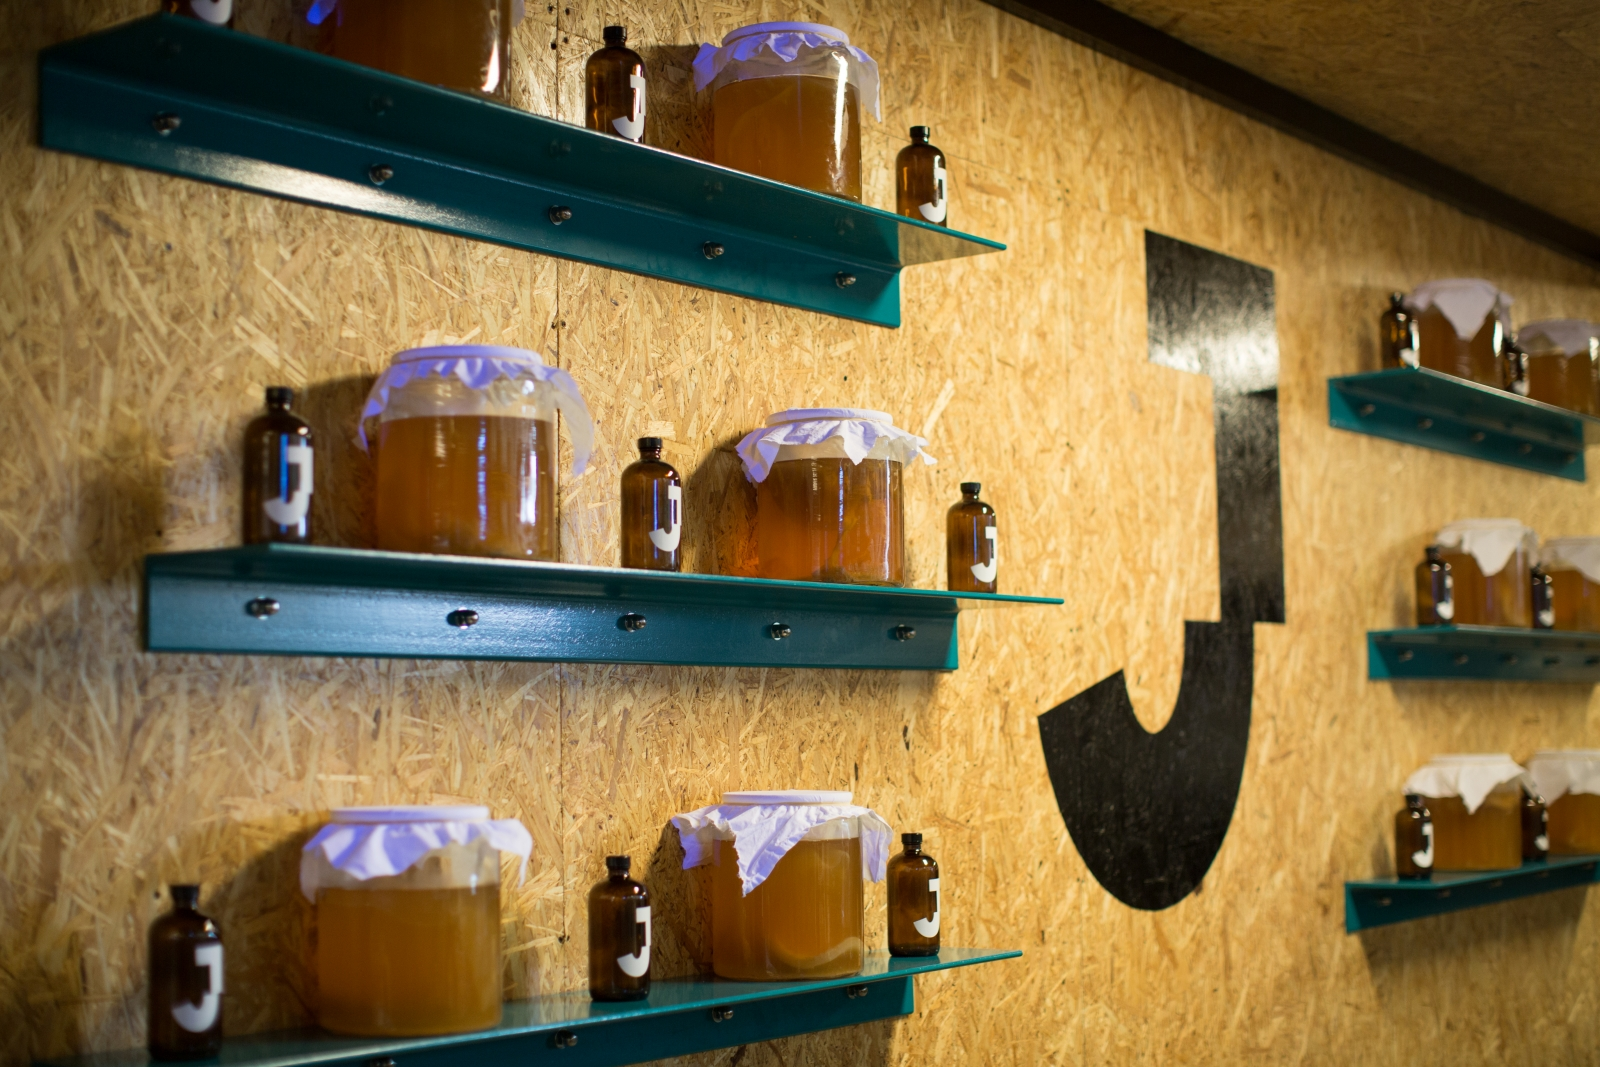 Fermenting kombucha at the JarrBar